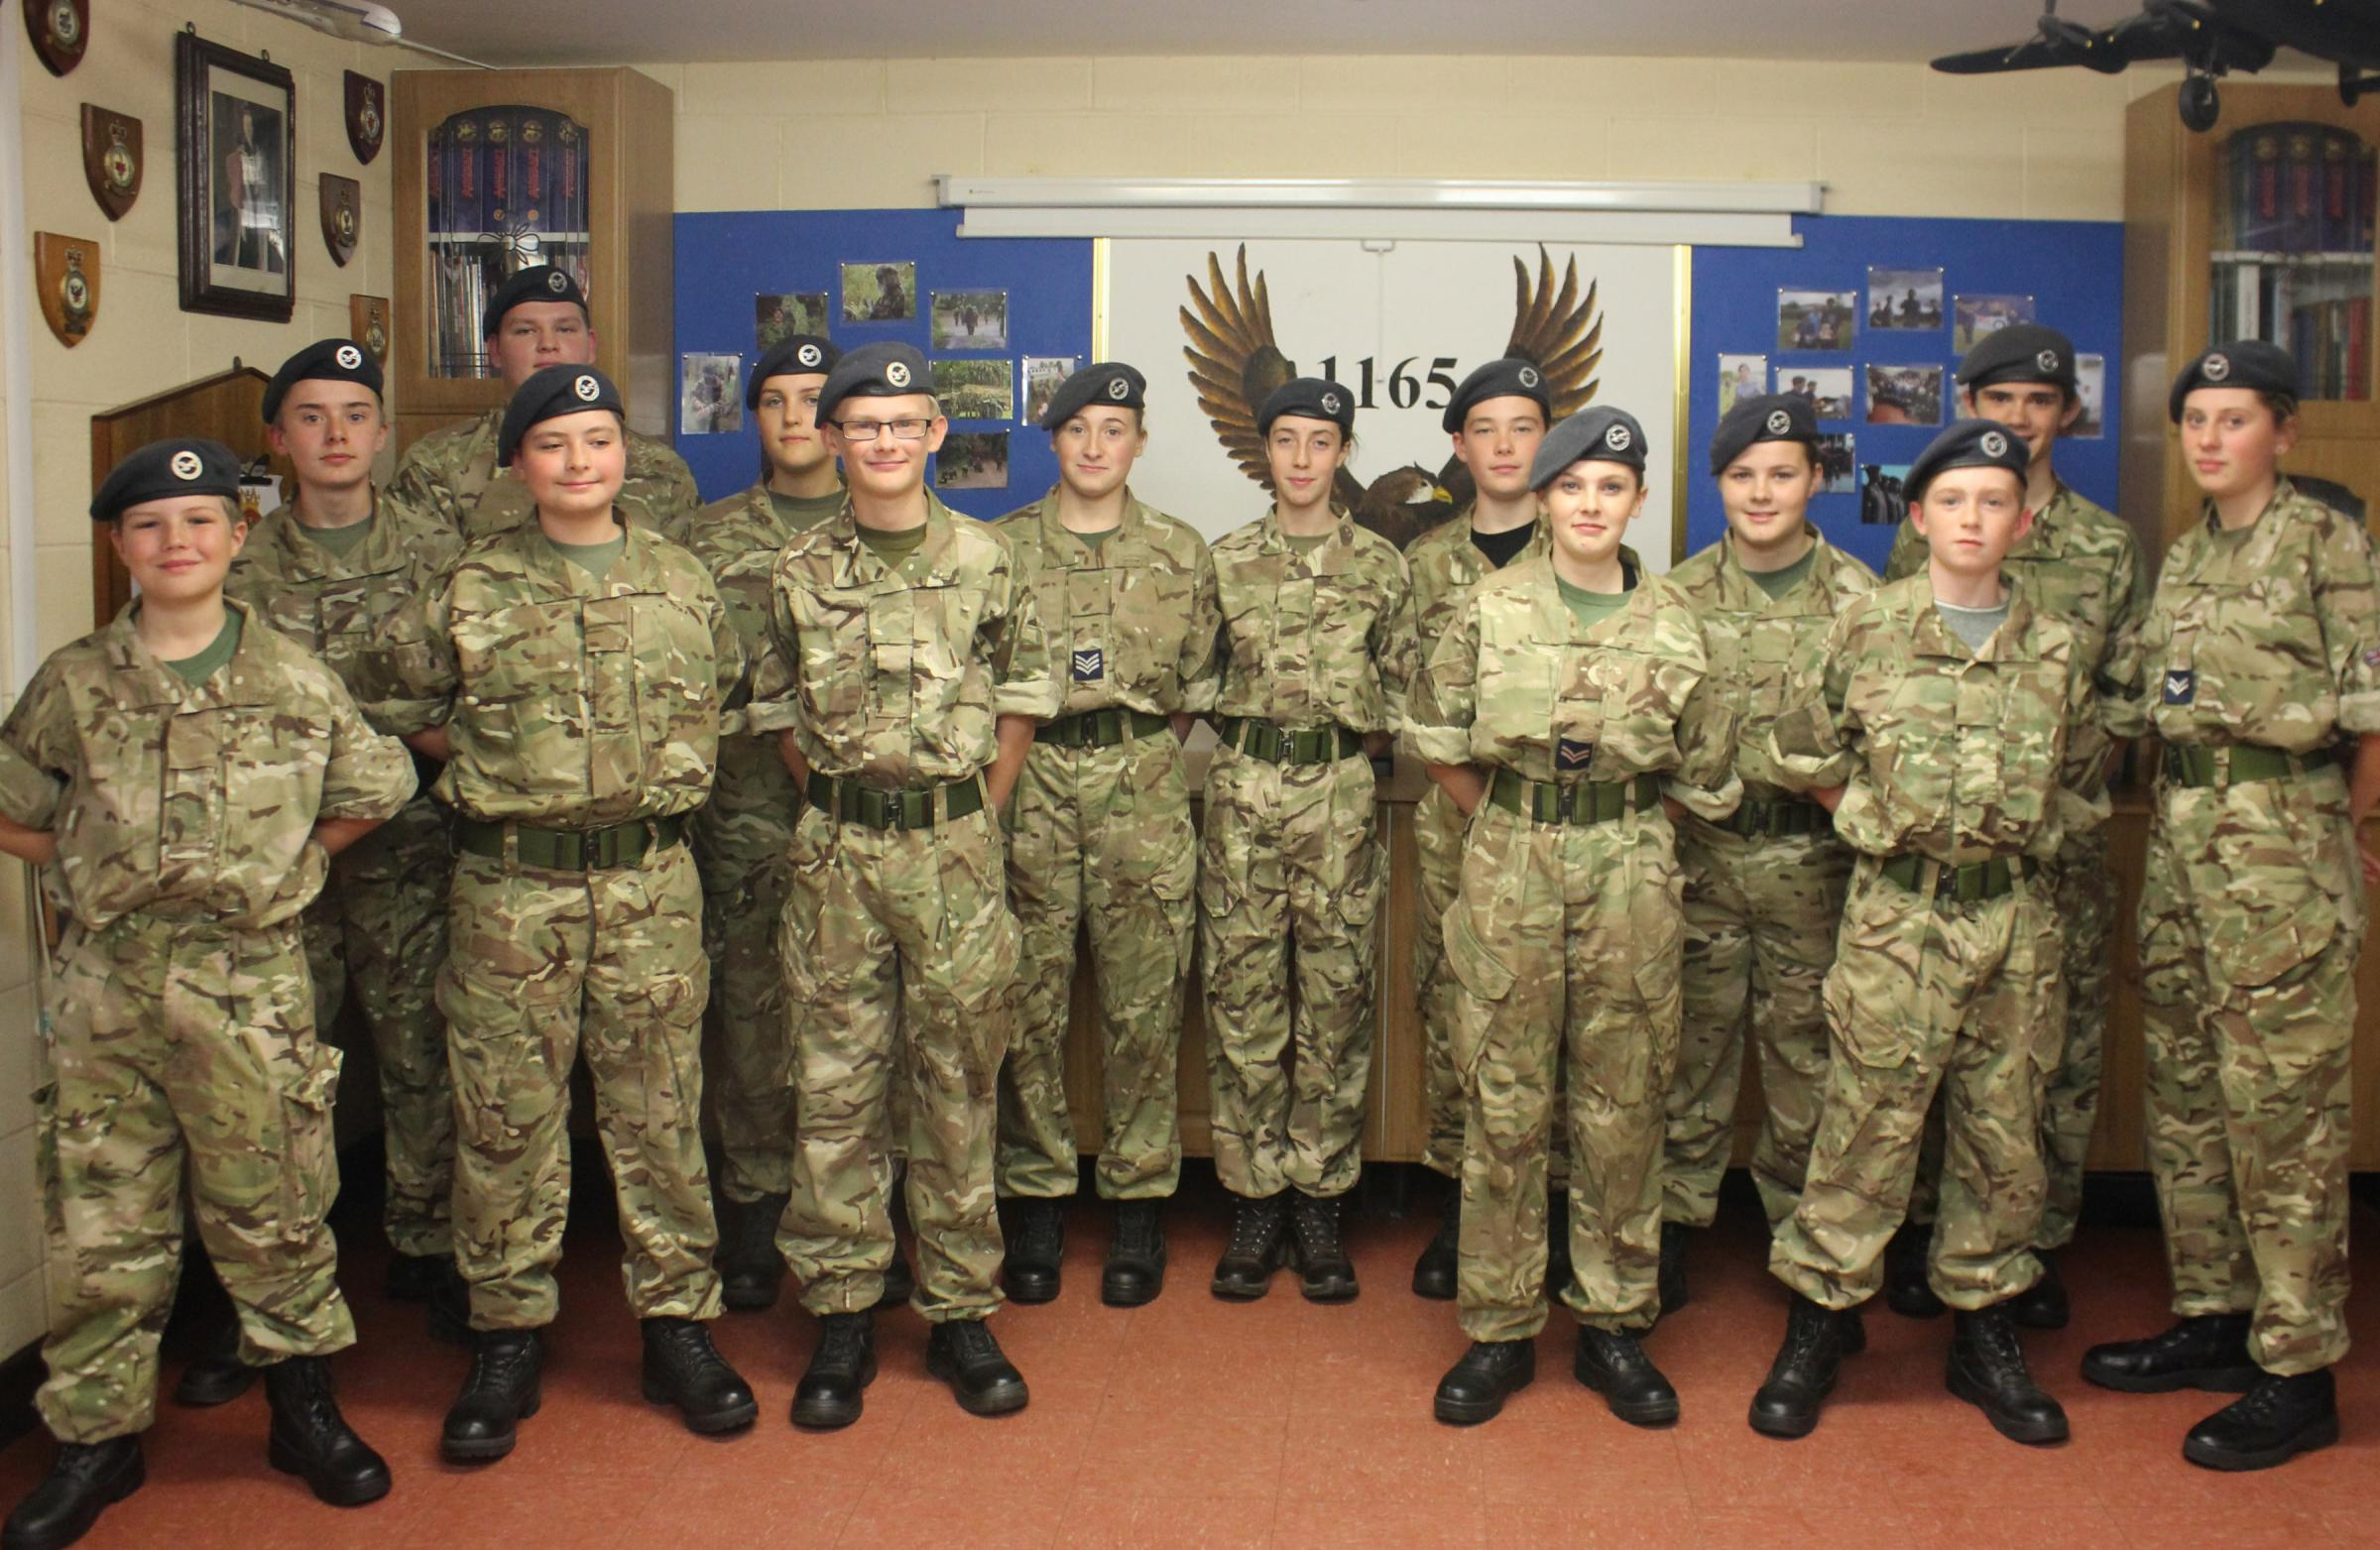 Cadets from 1165 Oswestry Air Training Corps will play a major role at the Old Oswestry hillfort First World War beacon lighting on the evening of November 11.